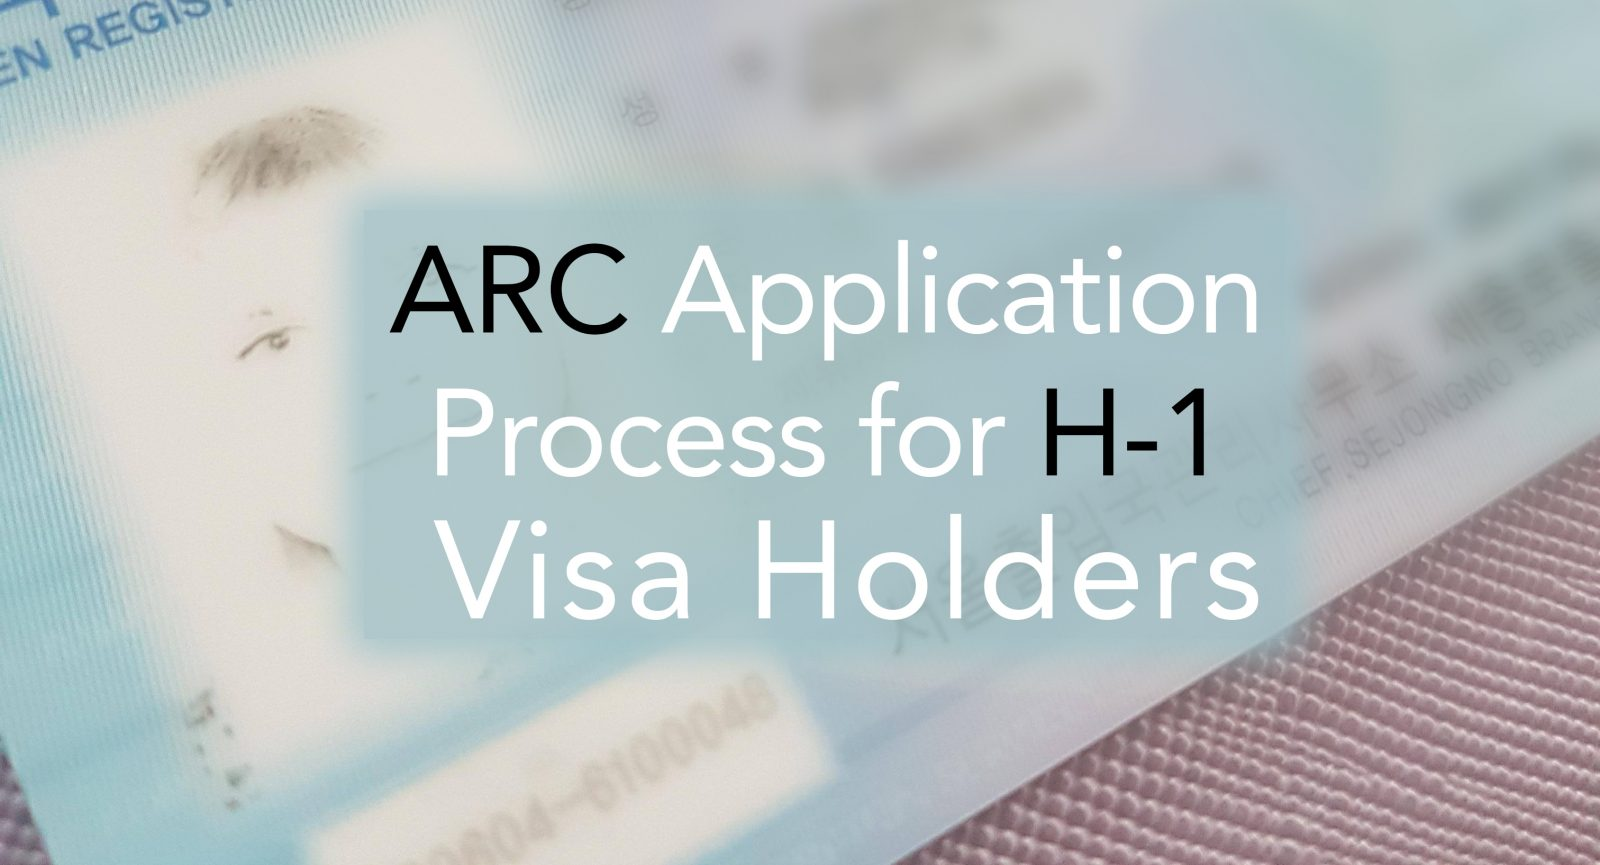 How to get an ARC card (H1 visa) in Korea